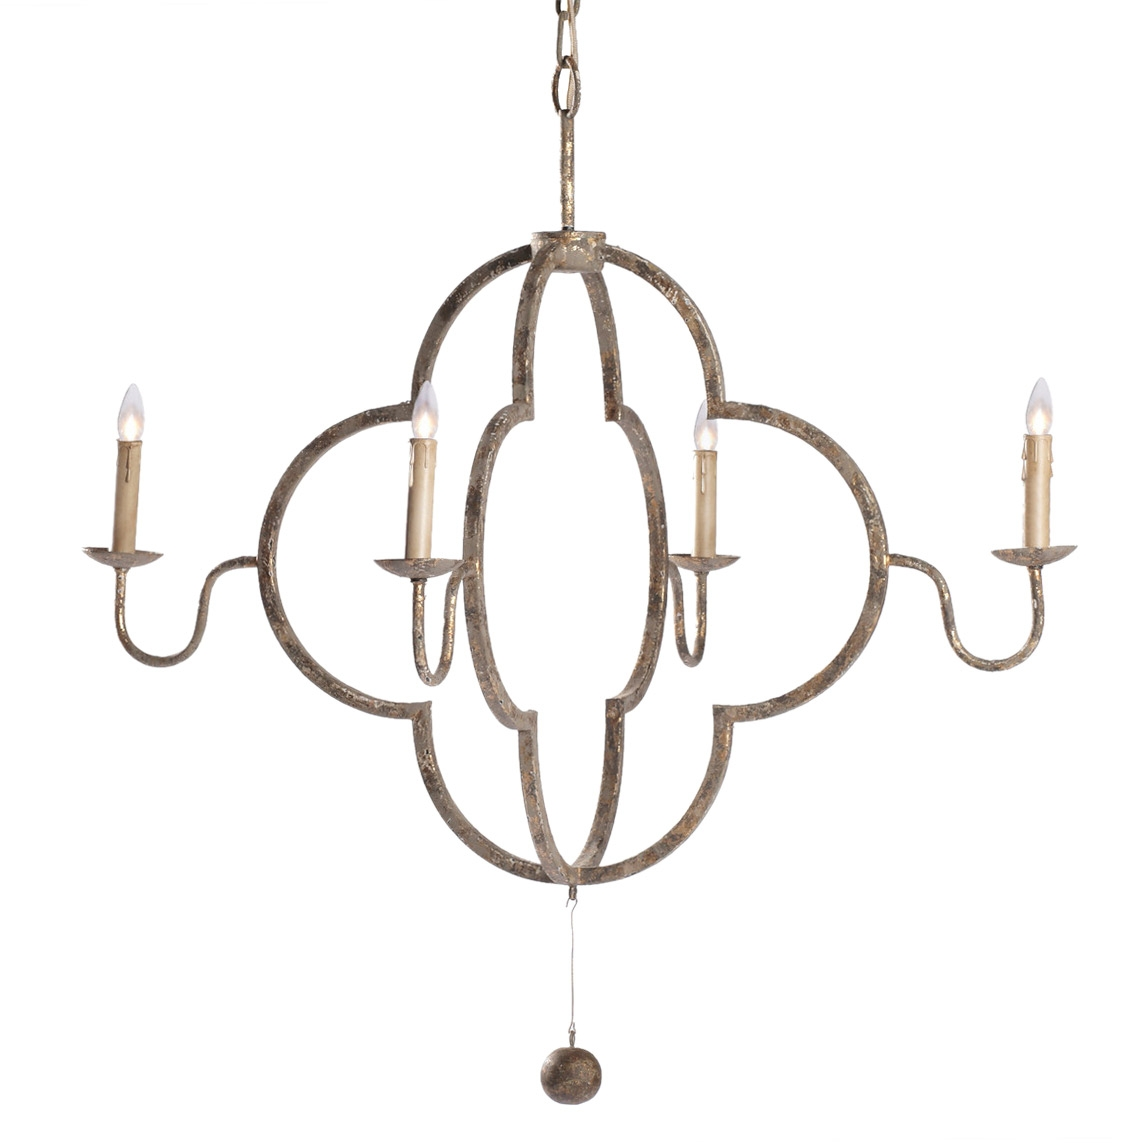 French Country Lighting Style Chandeliers Table Lamps Wall For French Style Chandeliers (Image 7 of 15)